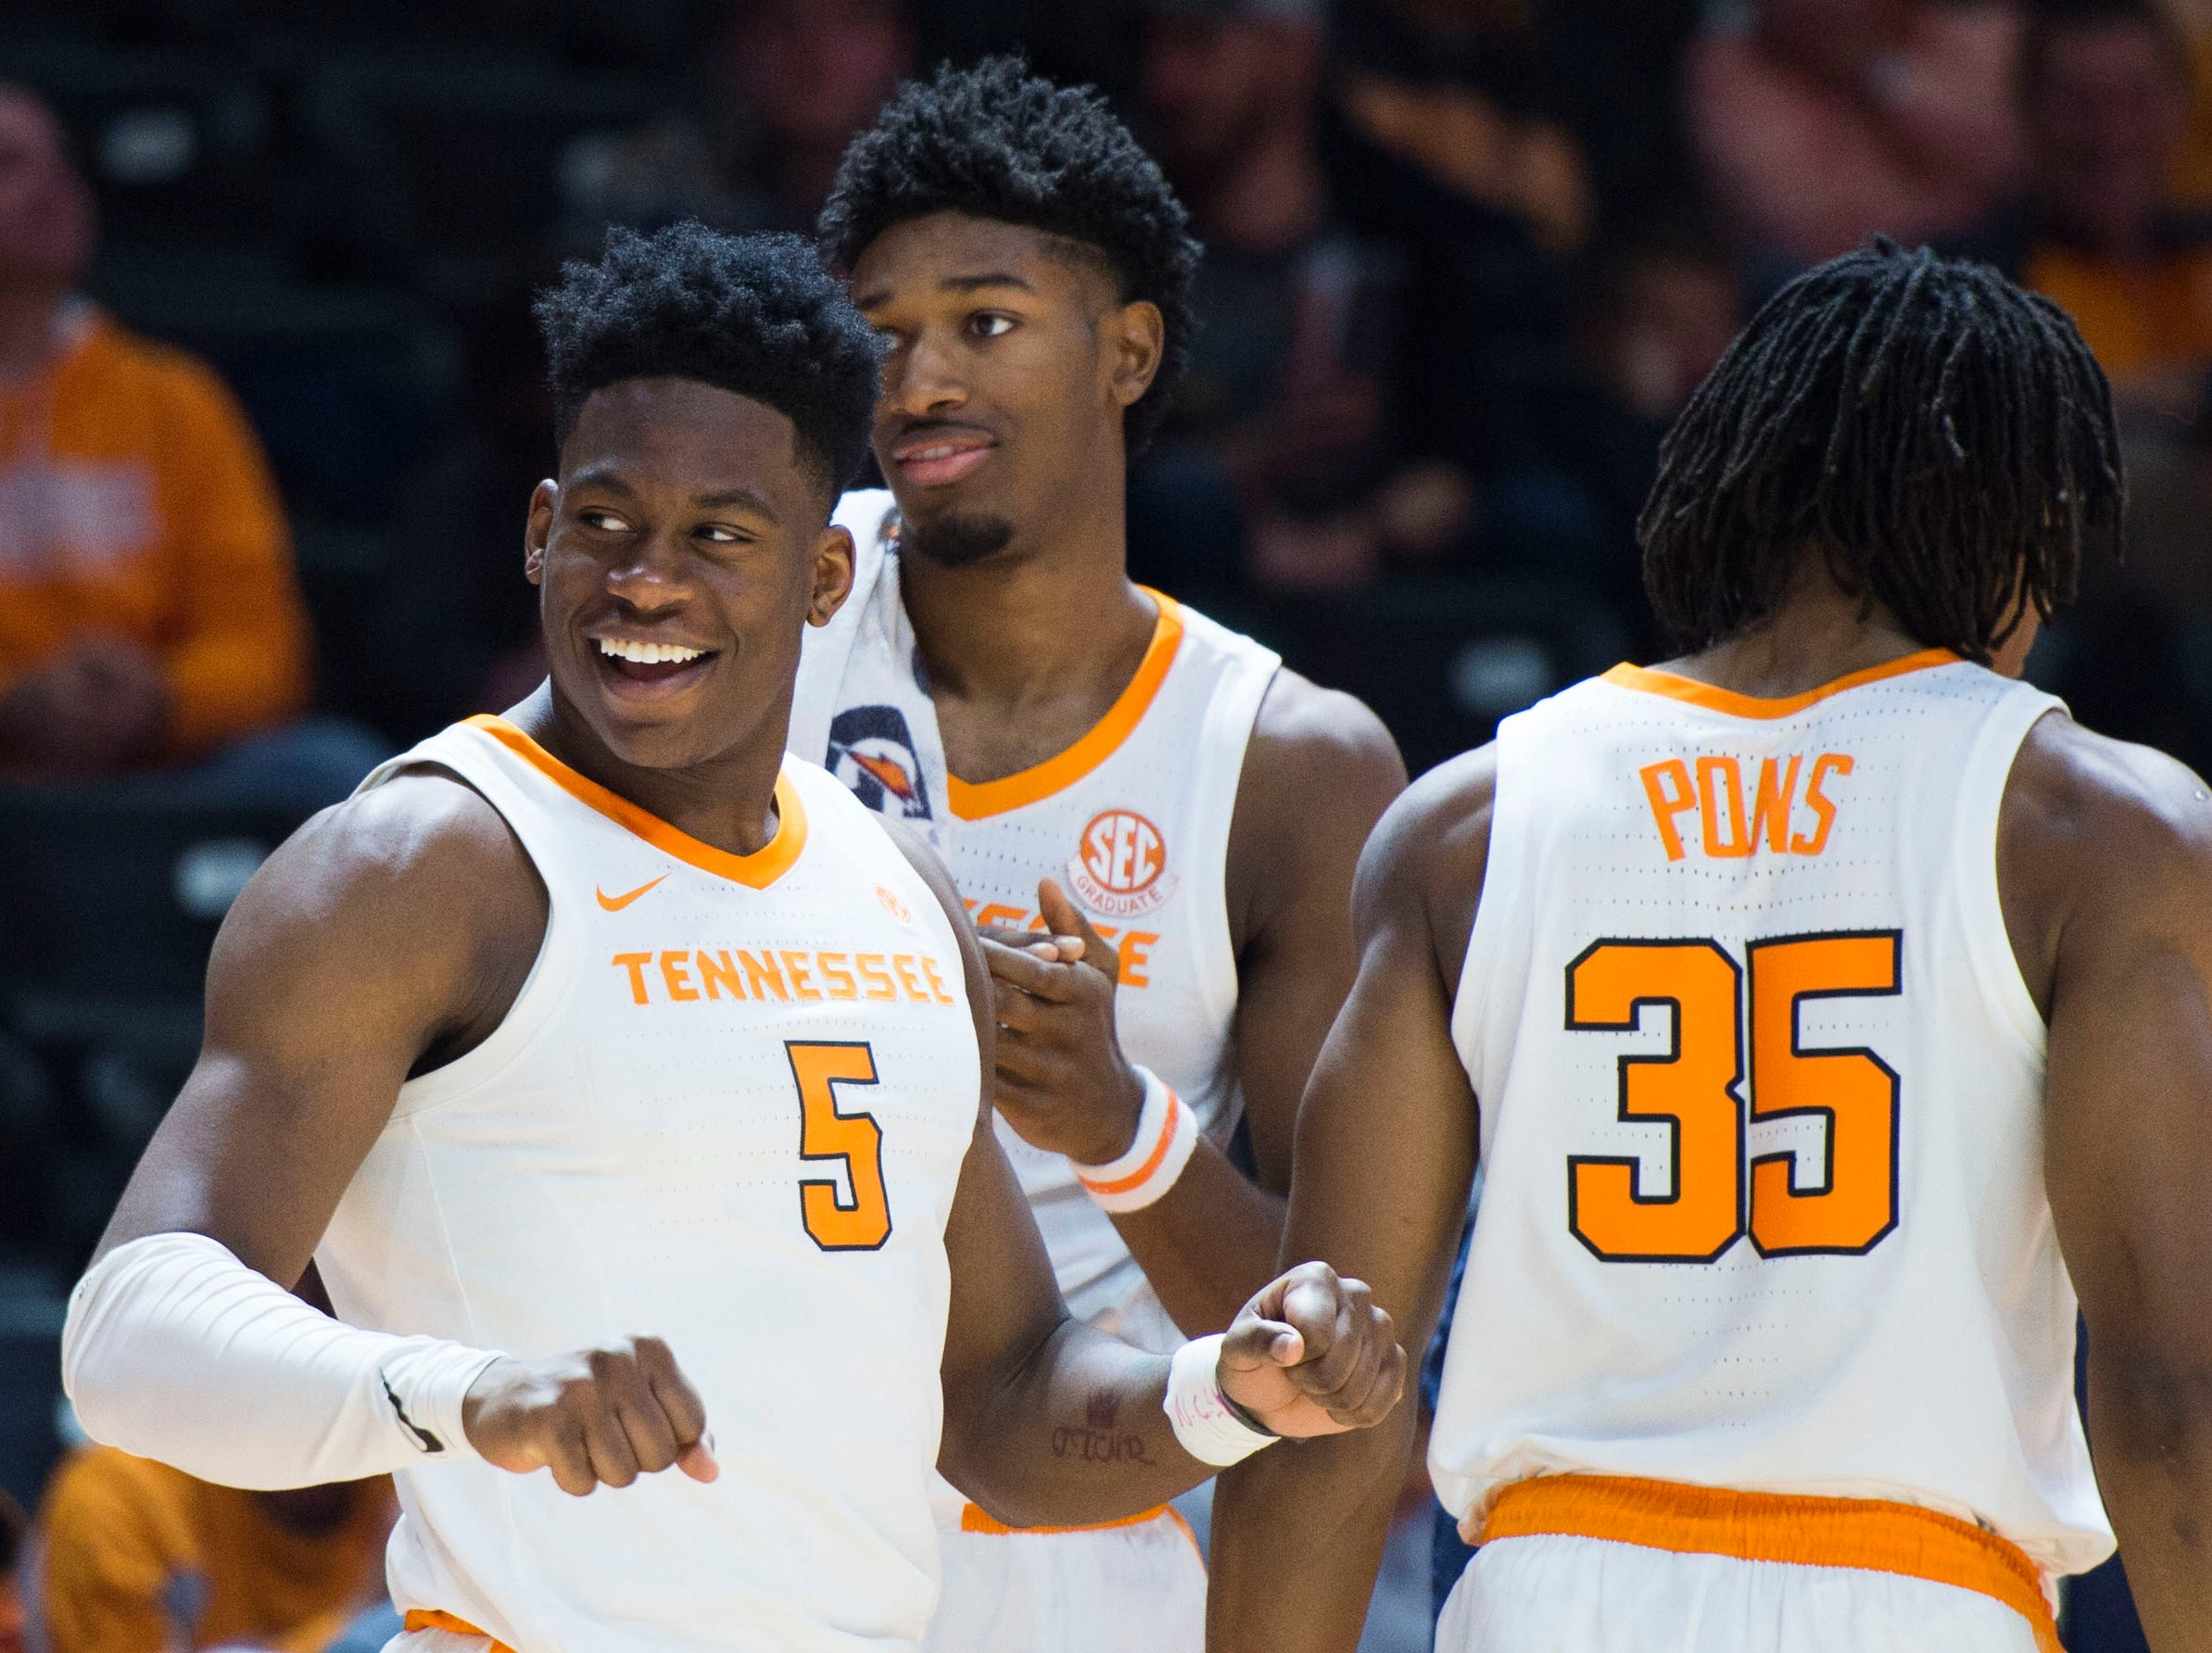 Tennessee's Admiral Schofield (5) and teammates celebrate a basket during the second half of a NCAA men's basketball game between Tennessee and Eastern Kentucky University at Thompson-Boling Arena Wednesday, Nov. 28, 2018. Tennessee defeated EKU 95-67.